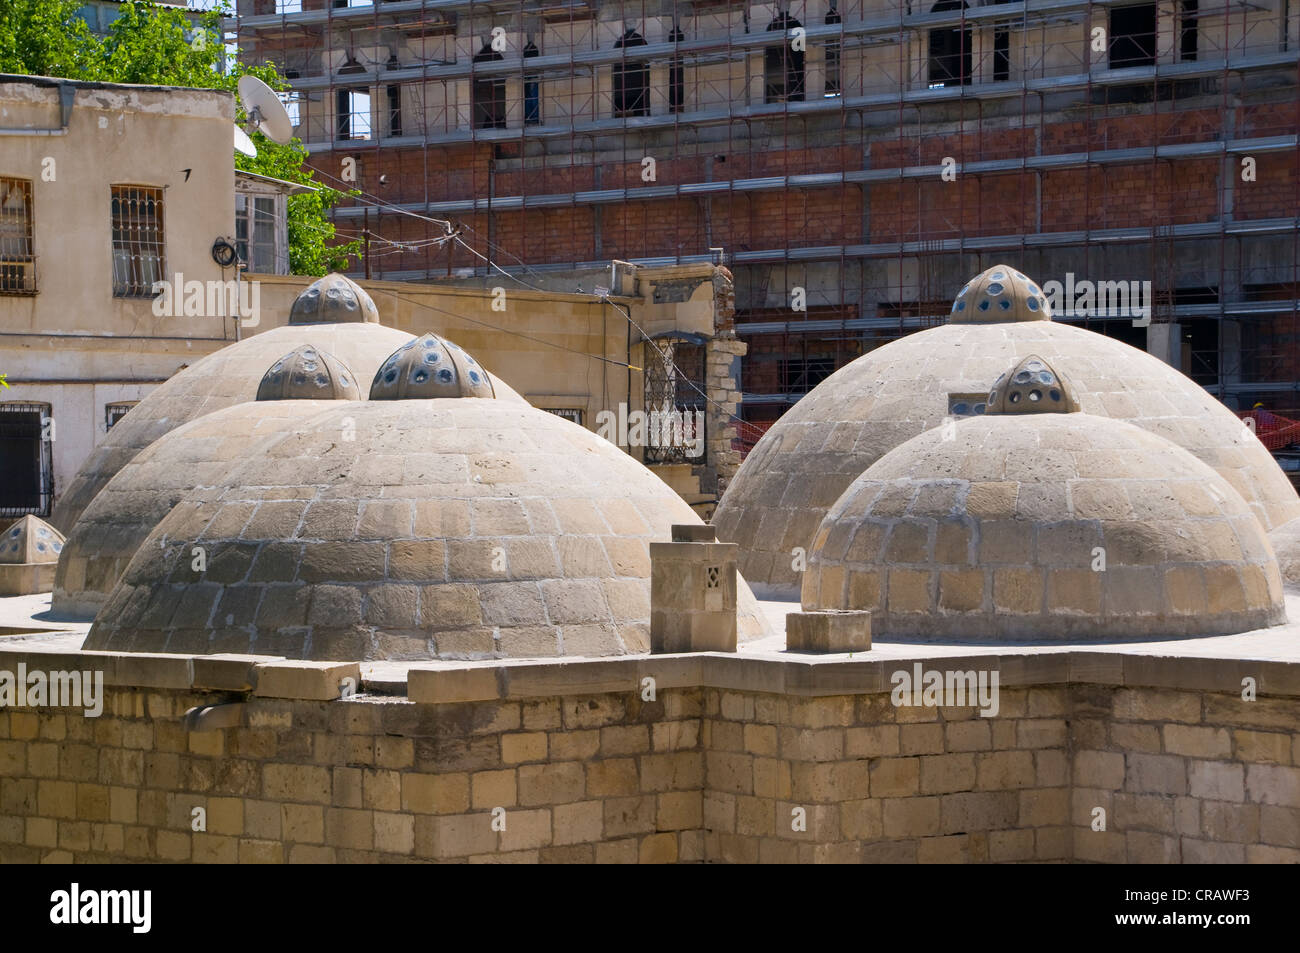 Roof of an old steam bath, Hammam, Baku, Azerbaijan, Caucasus, Middle East - Stock Image